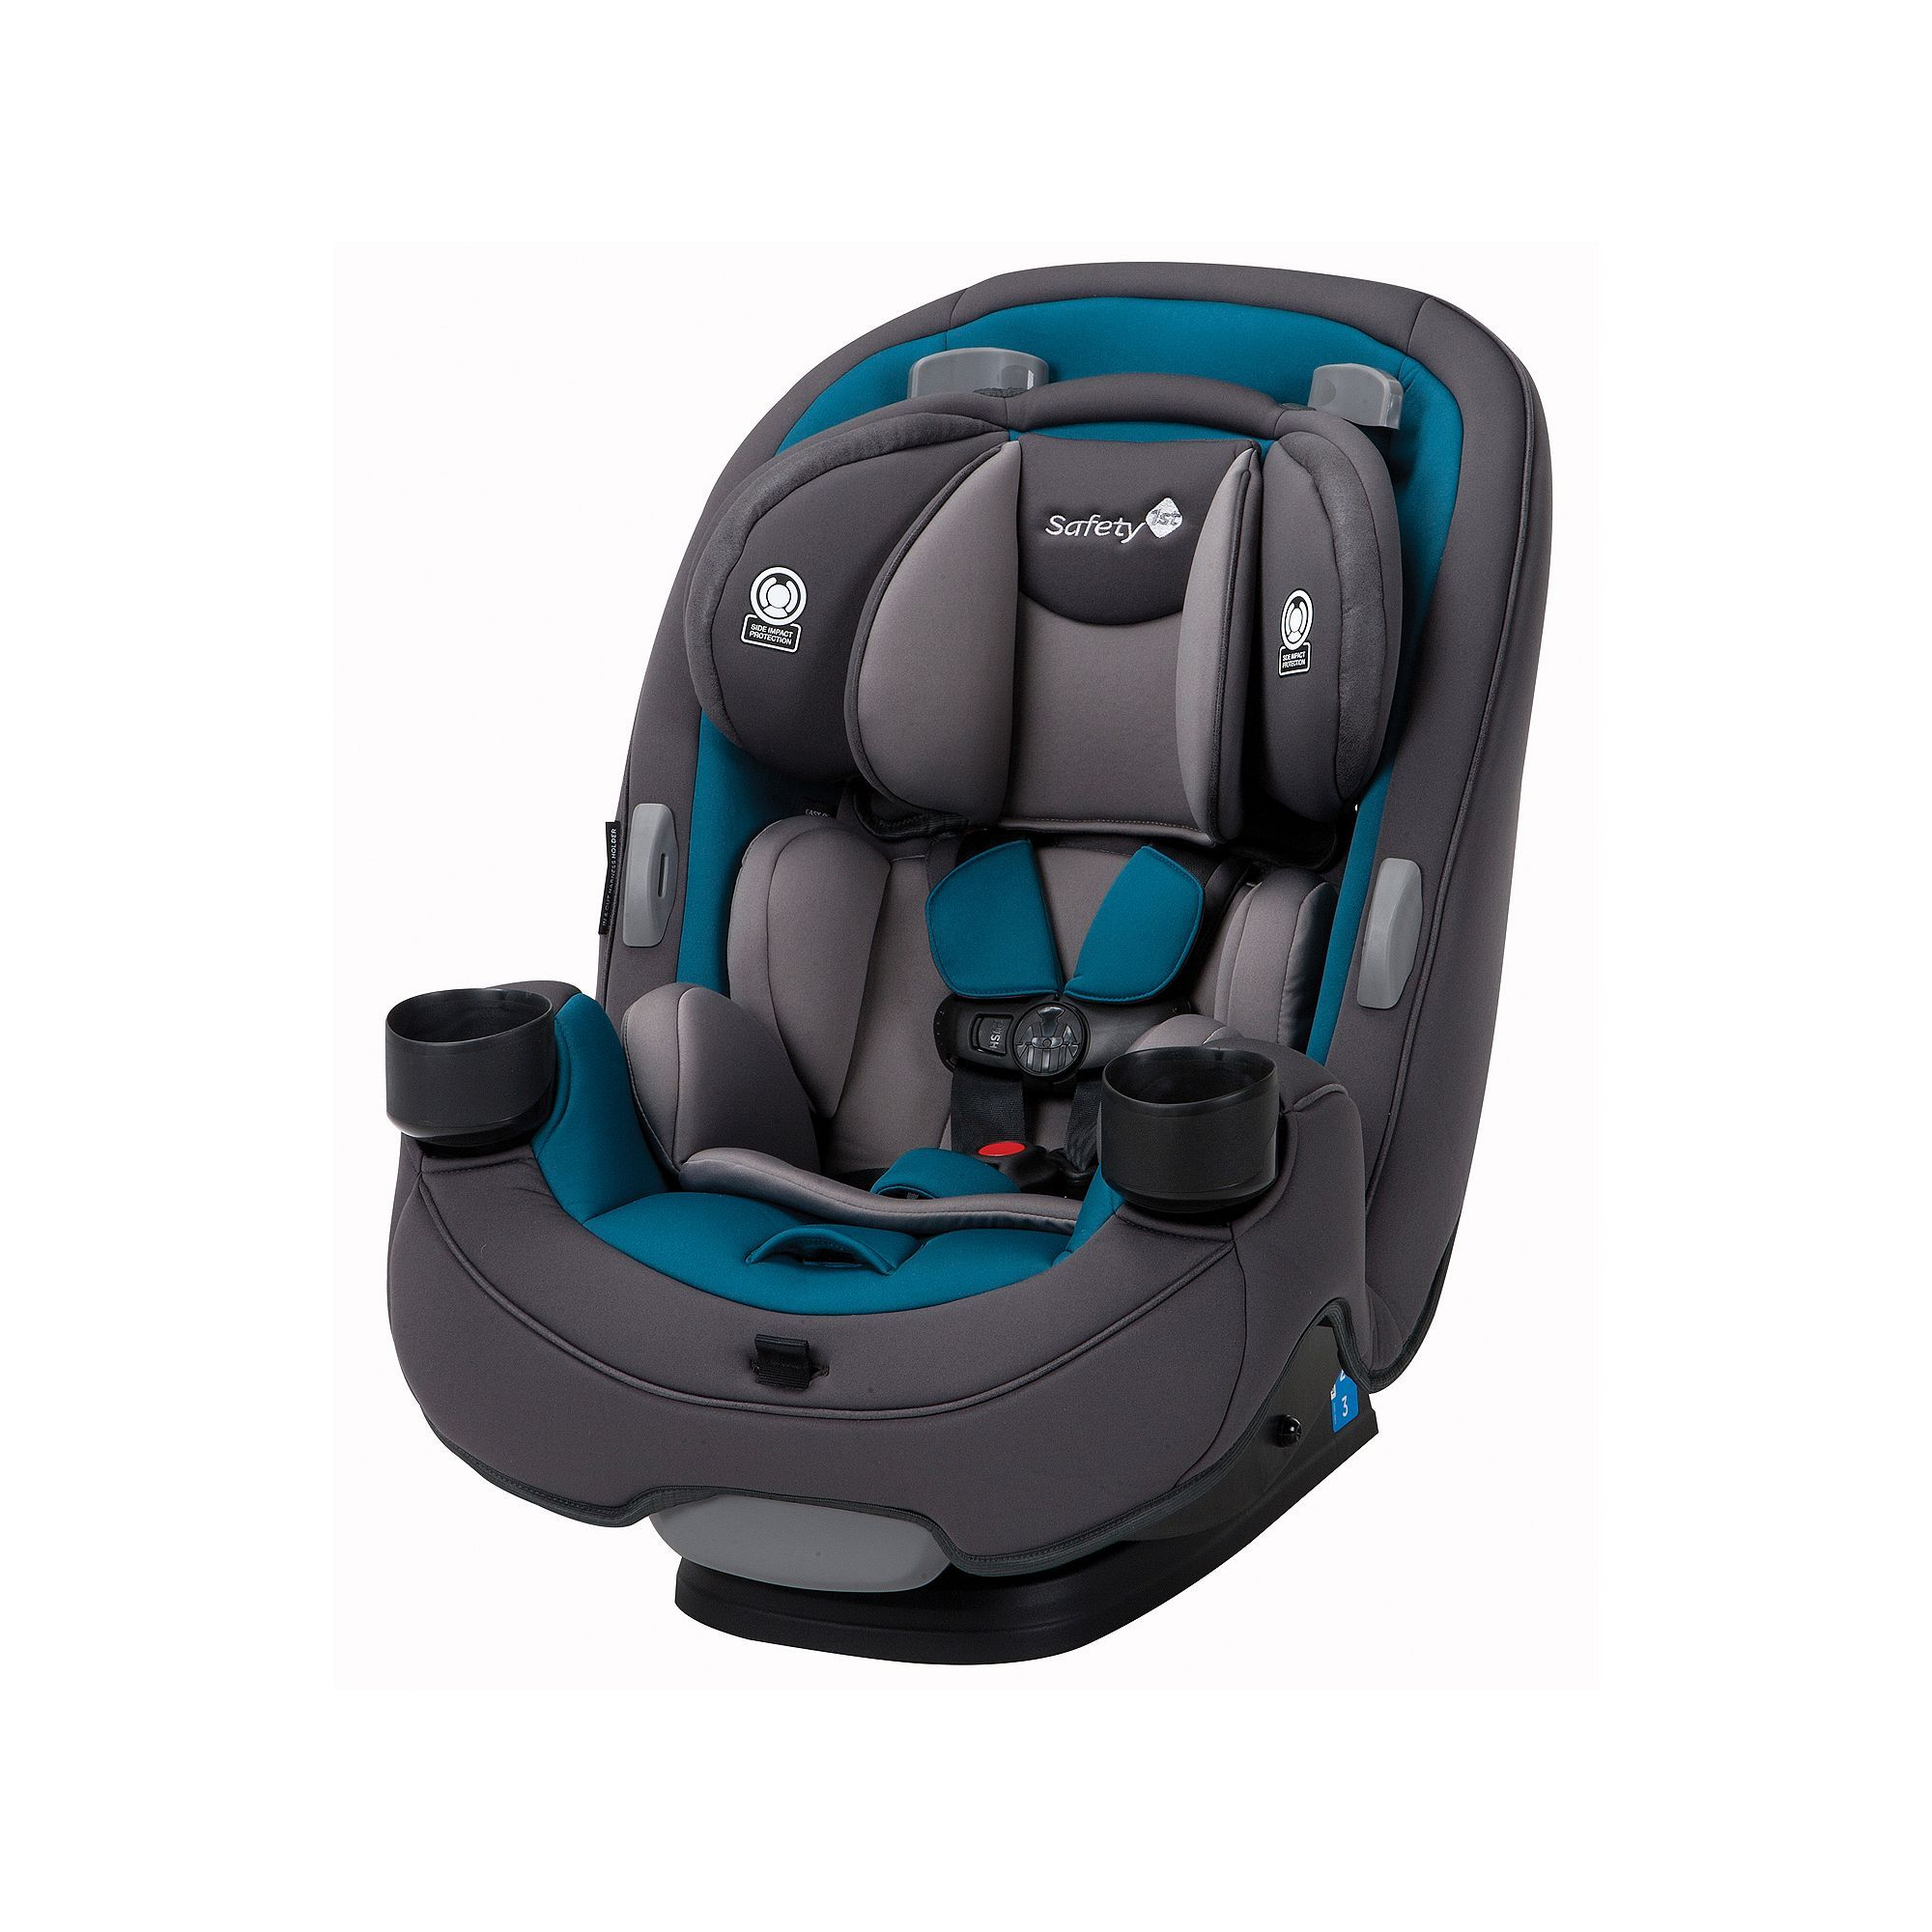 Safety 1st Grow & Go 3in1 Convertible Car Seat in 2020